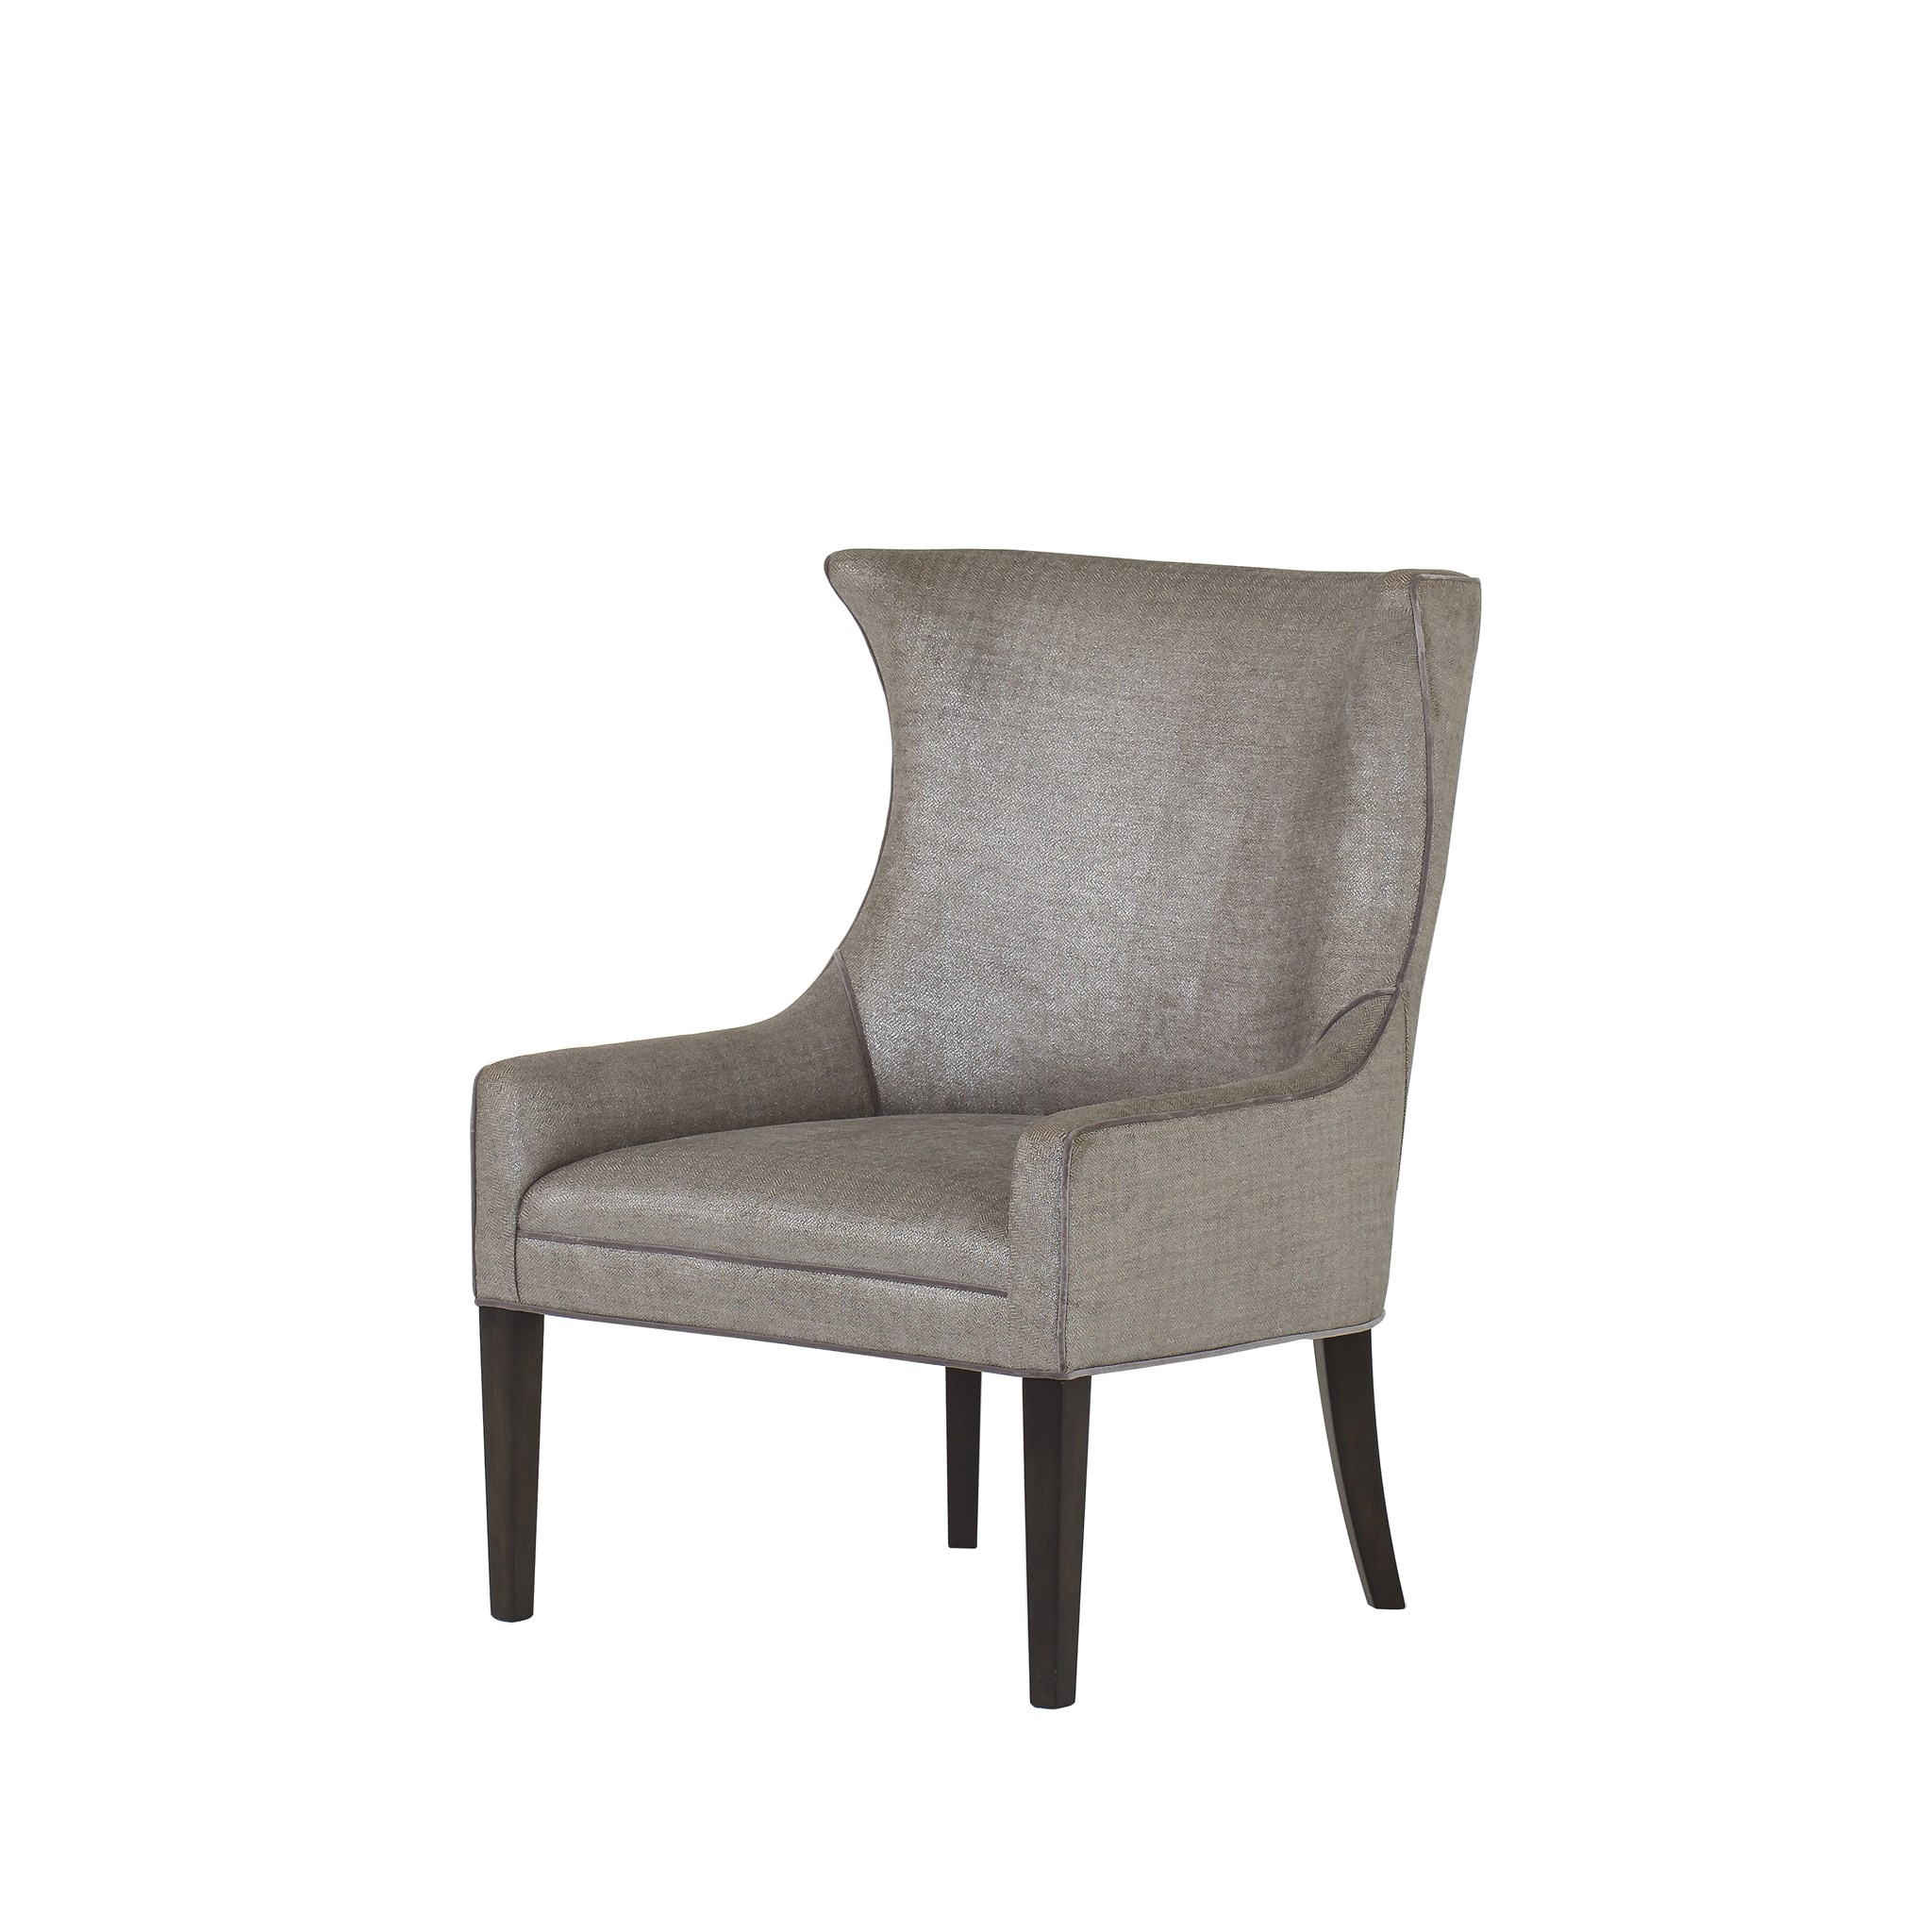 sc 1 st  Resource Decor & Hamish Chair - Mitt Silver - occasional chairs - Sonder Distribution